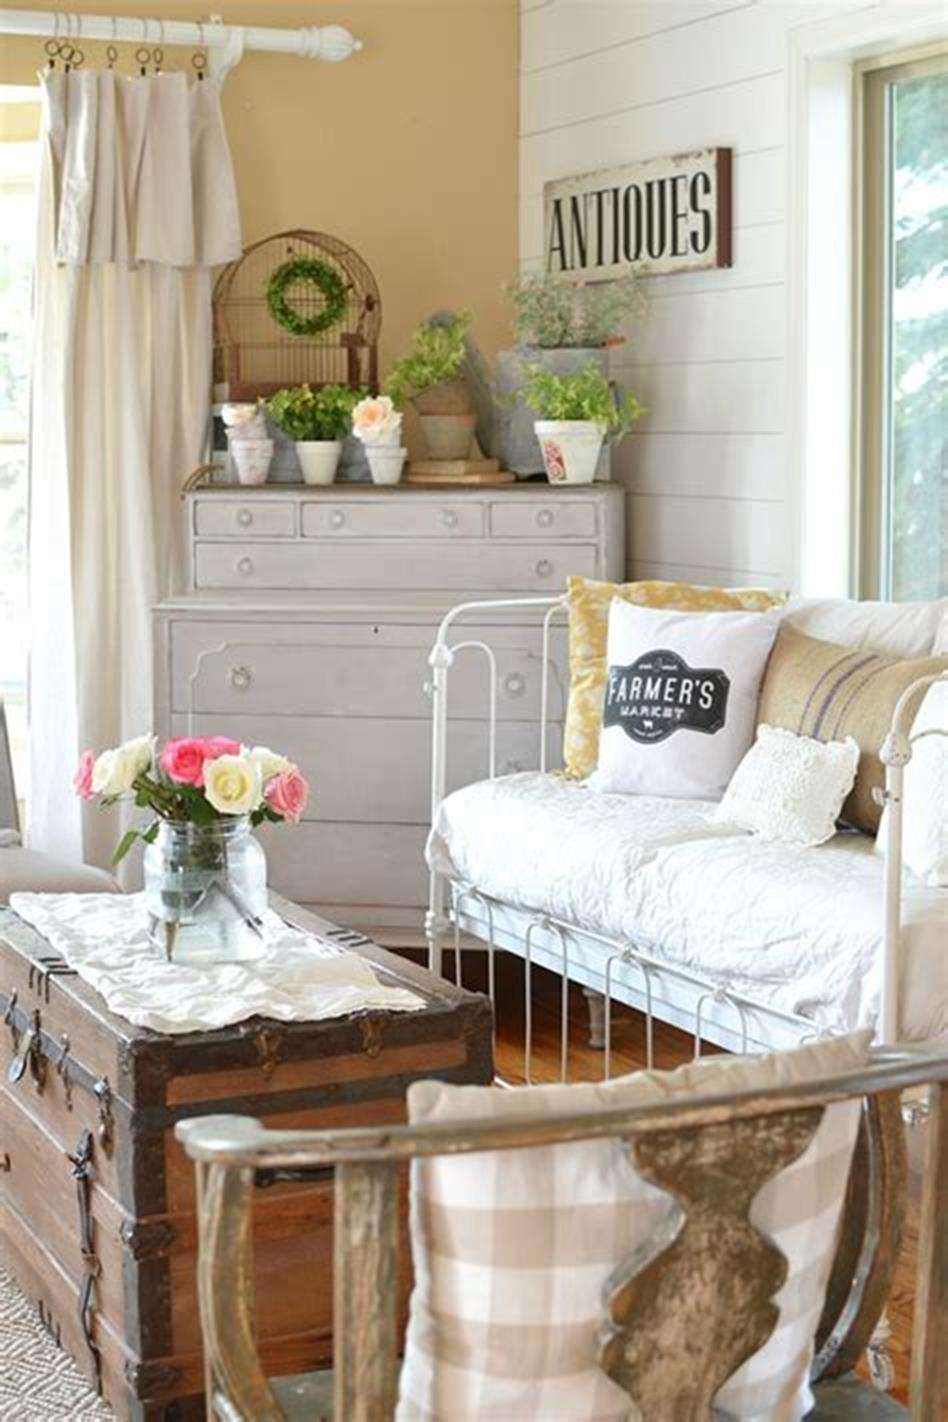 37 Beautiful Farmhouse Spring Decorating Ideas On a Budget for 2019 61